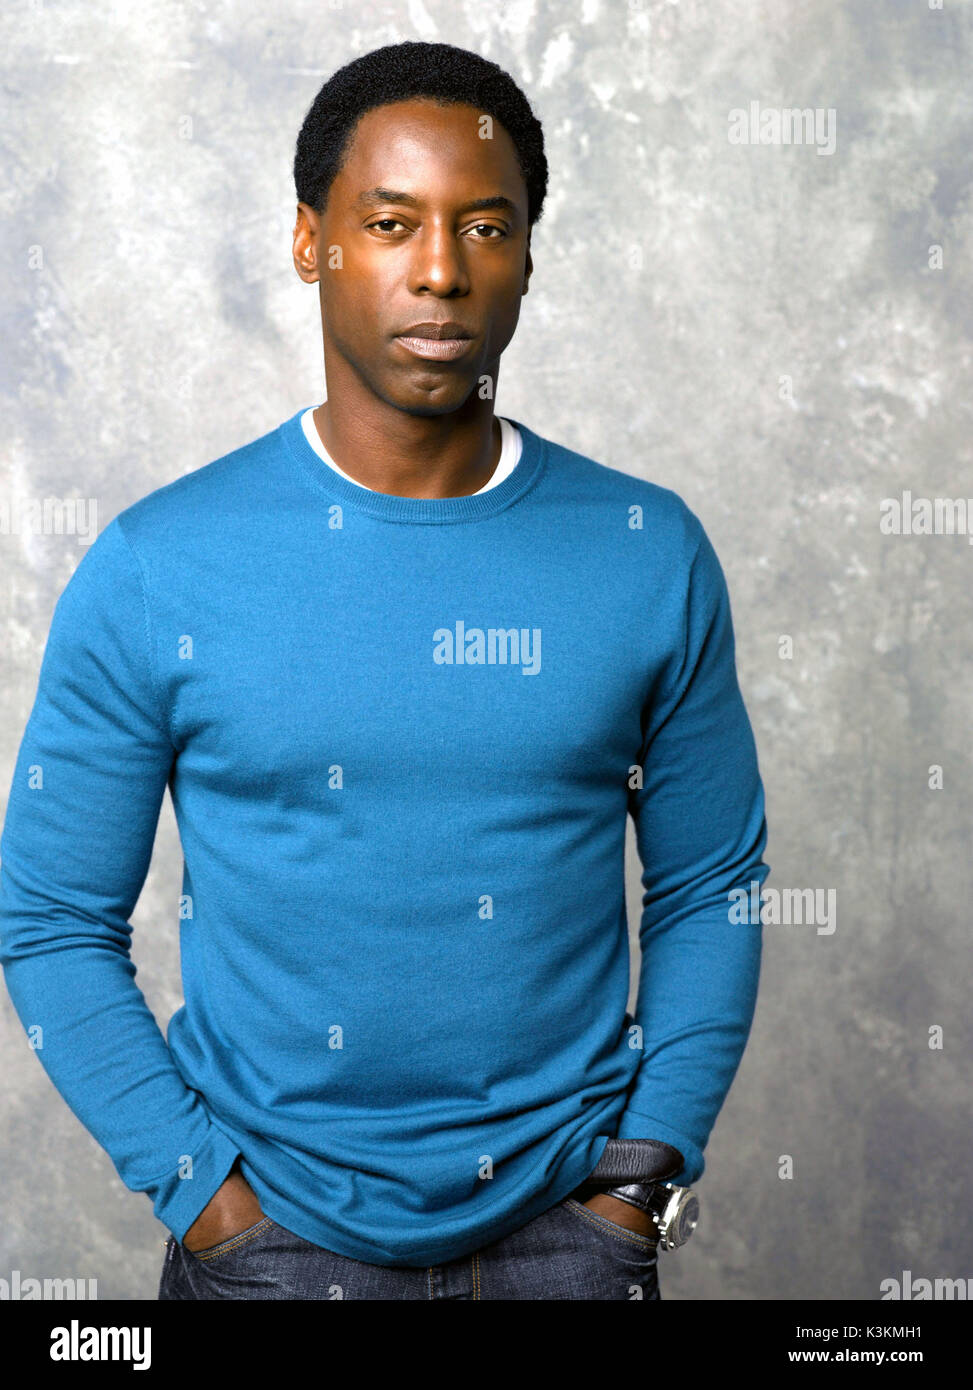 Grey S Anatomy Us Tv Series 2005 Series 3 Isaiah Washington Stock Photo Alamy